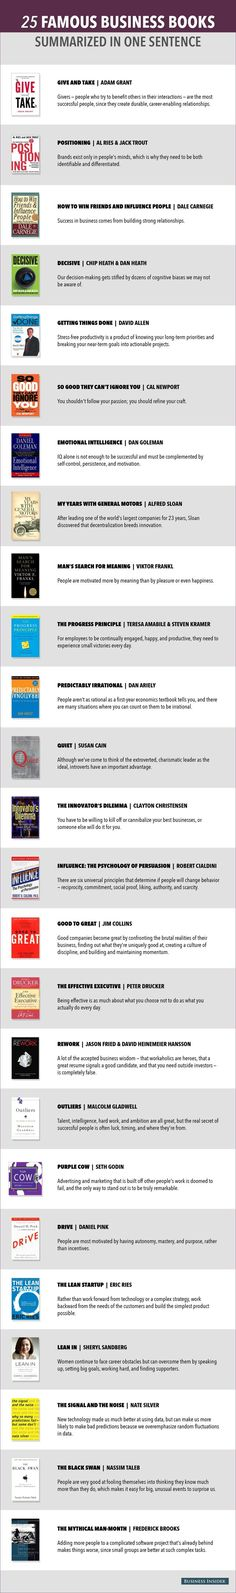 25 Famous Business Books Summarized in one Sentence http://www.businessinsider.com/famous-business-book-summaries-2014-5